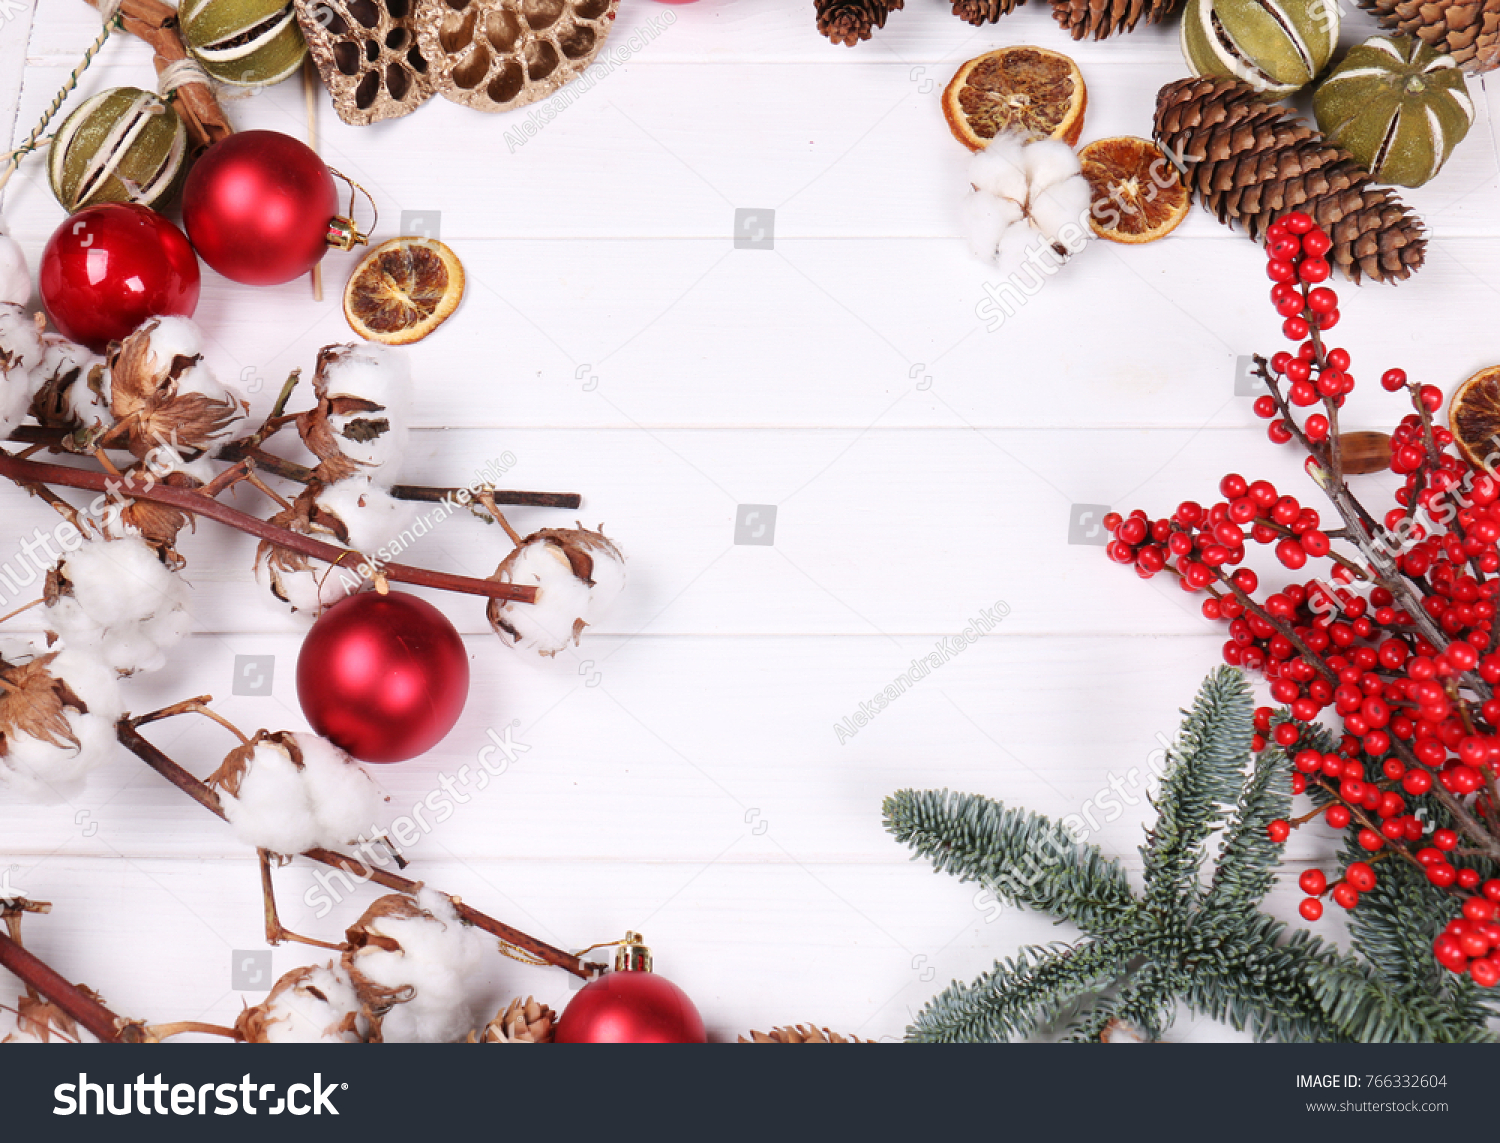 stock photo christmas wallpaper with red balls and cones on a white background 766332604